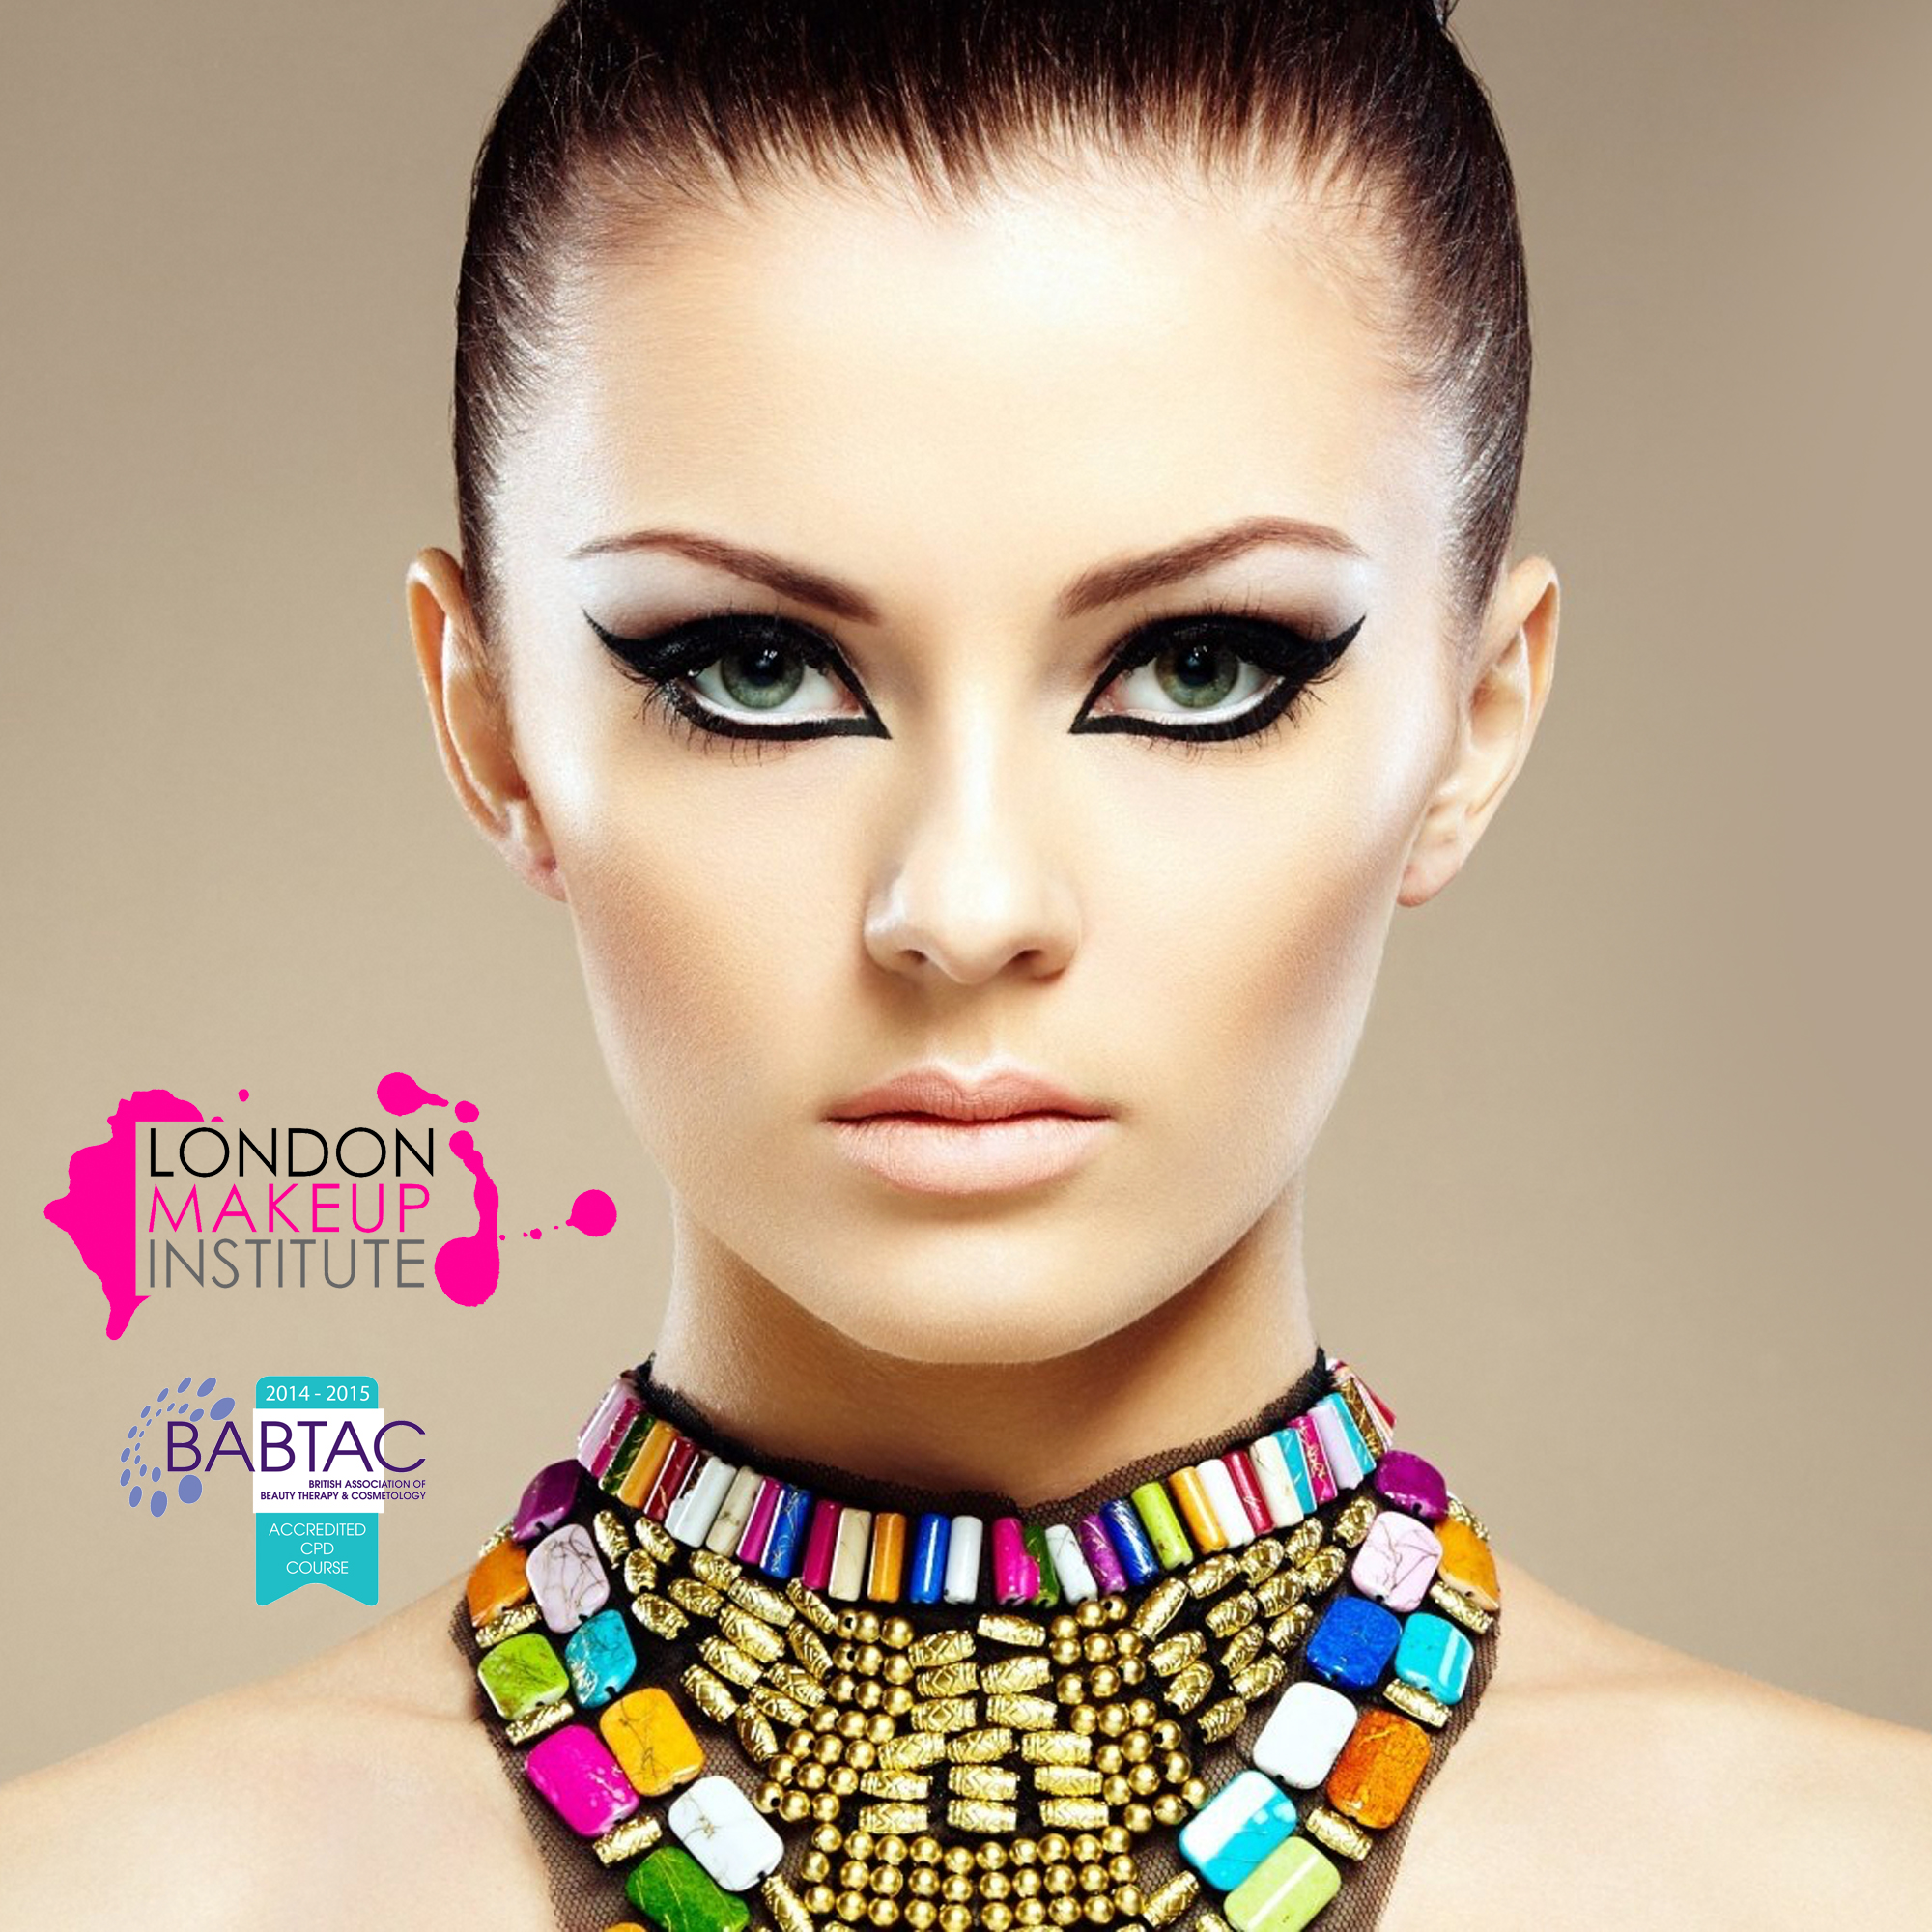 TOTAL PRO MAKE-UP COURSE BOOKING